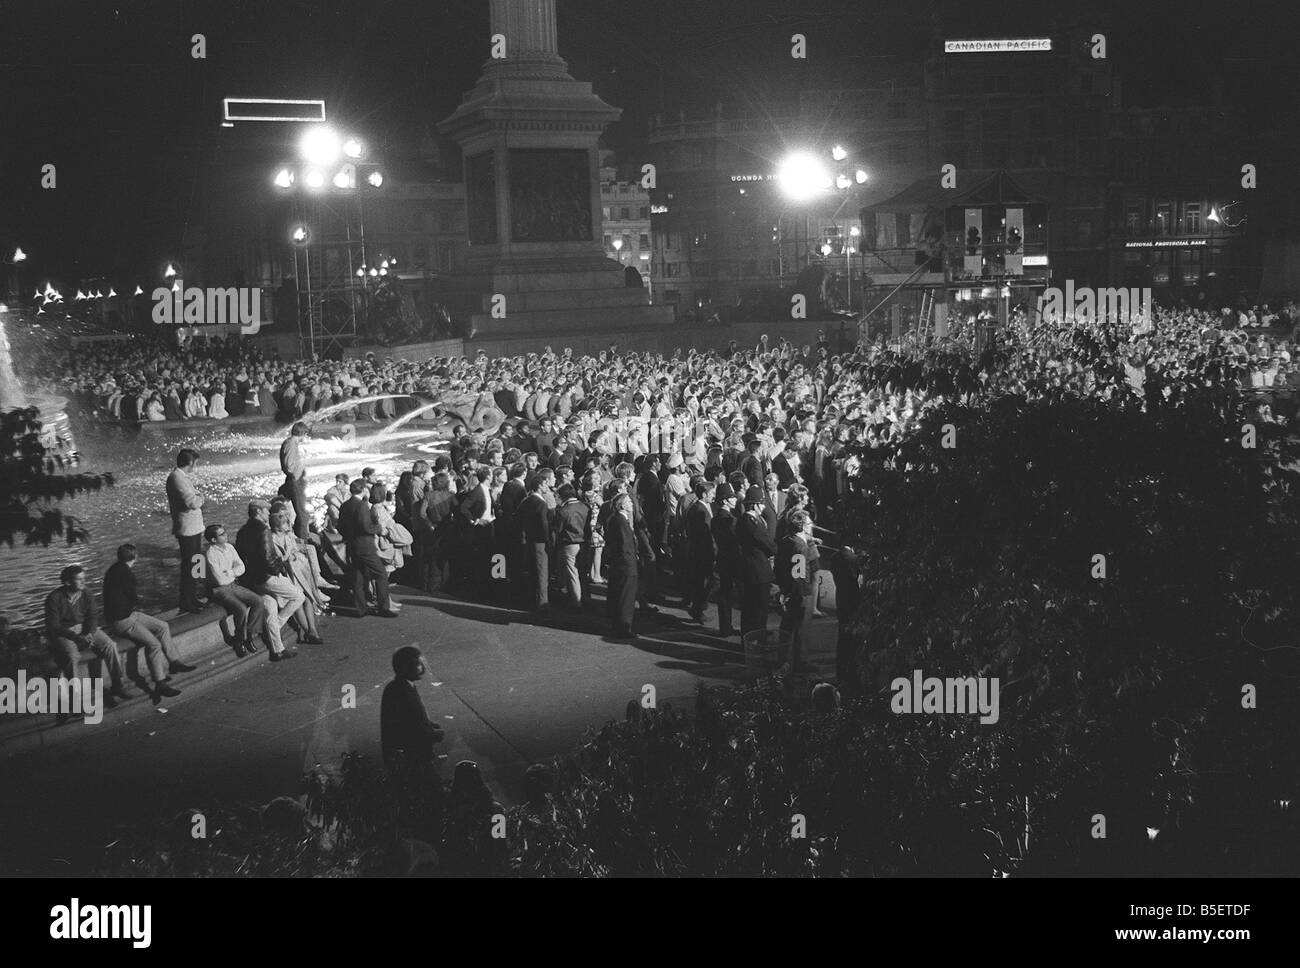 Trafalgar Square London July 1969 People Gather Late At Night In Stock Photo Royalty Free Image